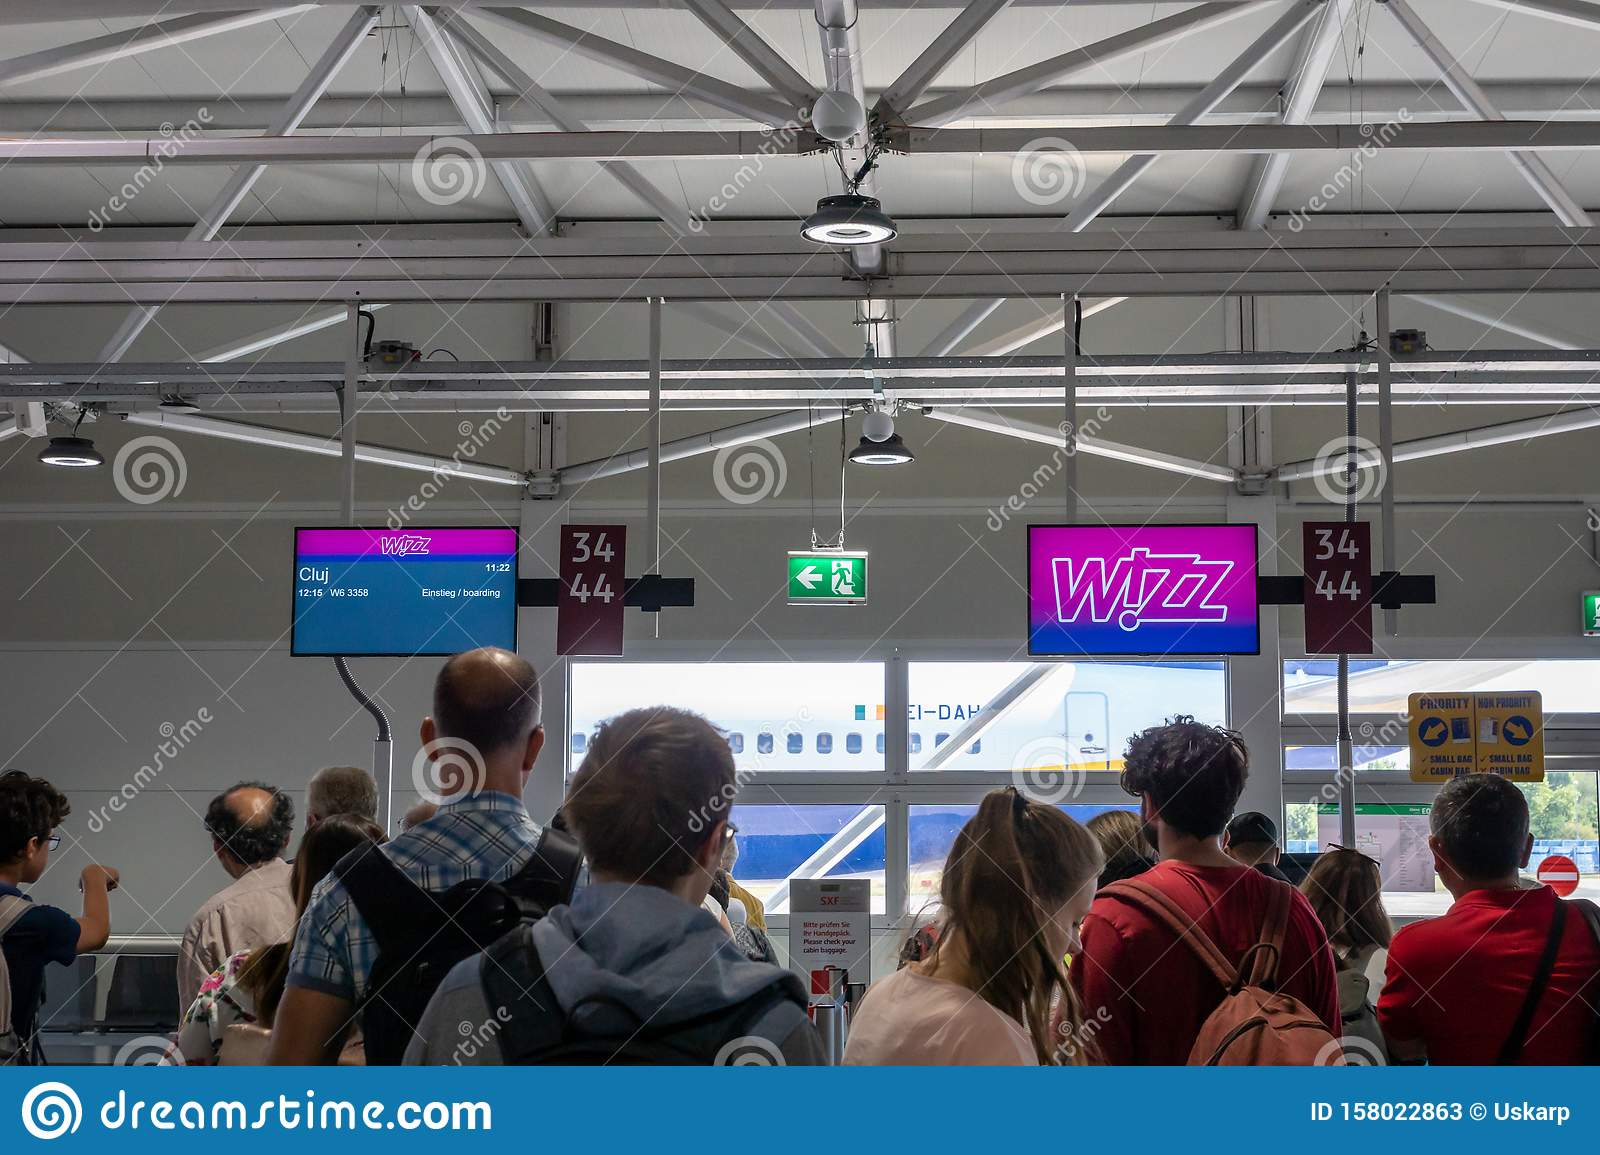 Wizz Air Check In Counter In Berlin Schonefeld Airport Editorial Stock Photo Image Of Festival Pilot 158022863